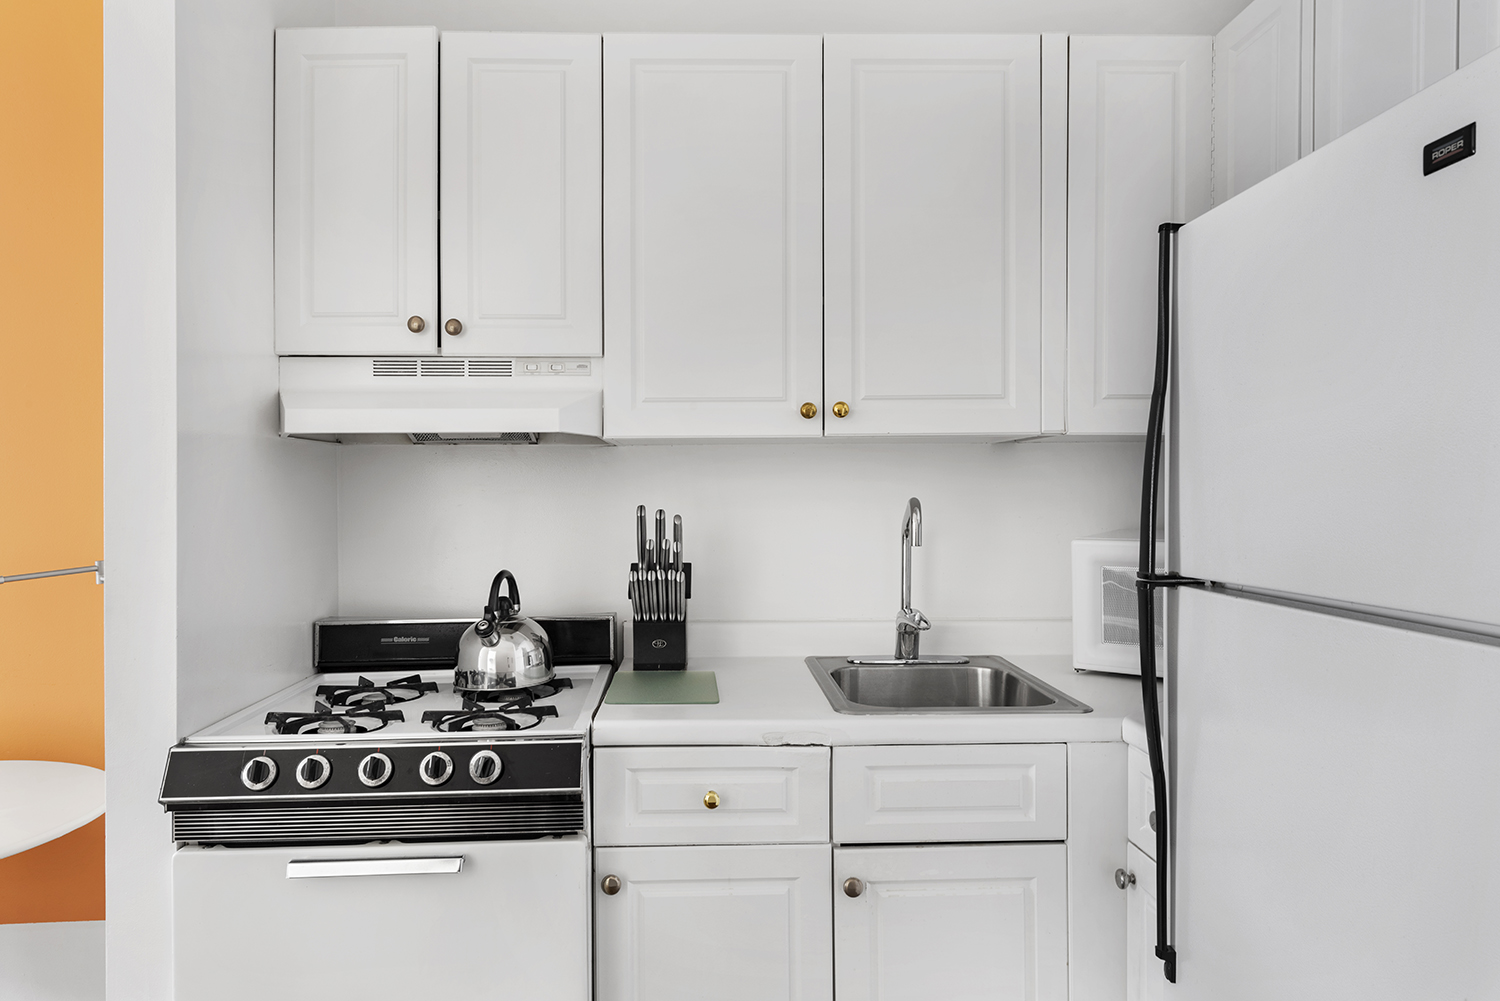 Oven at East 74th Street Apartments